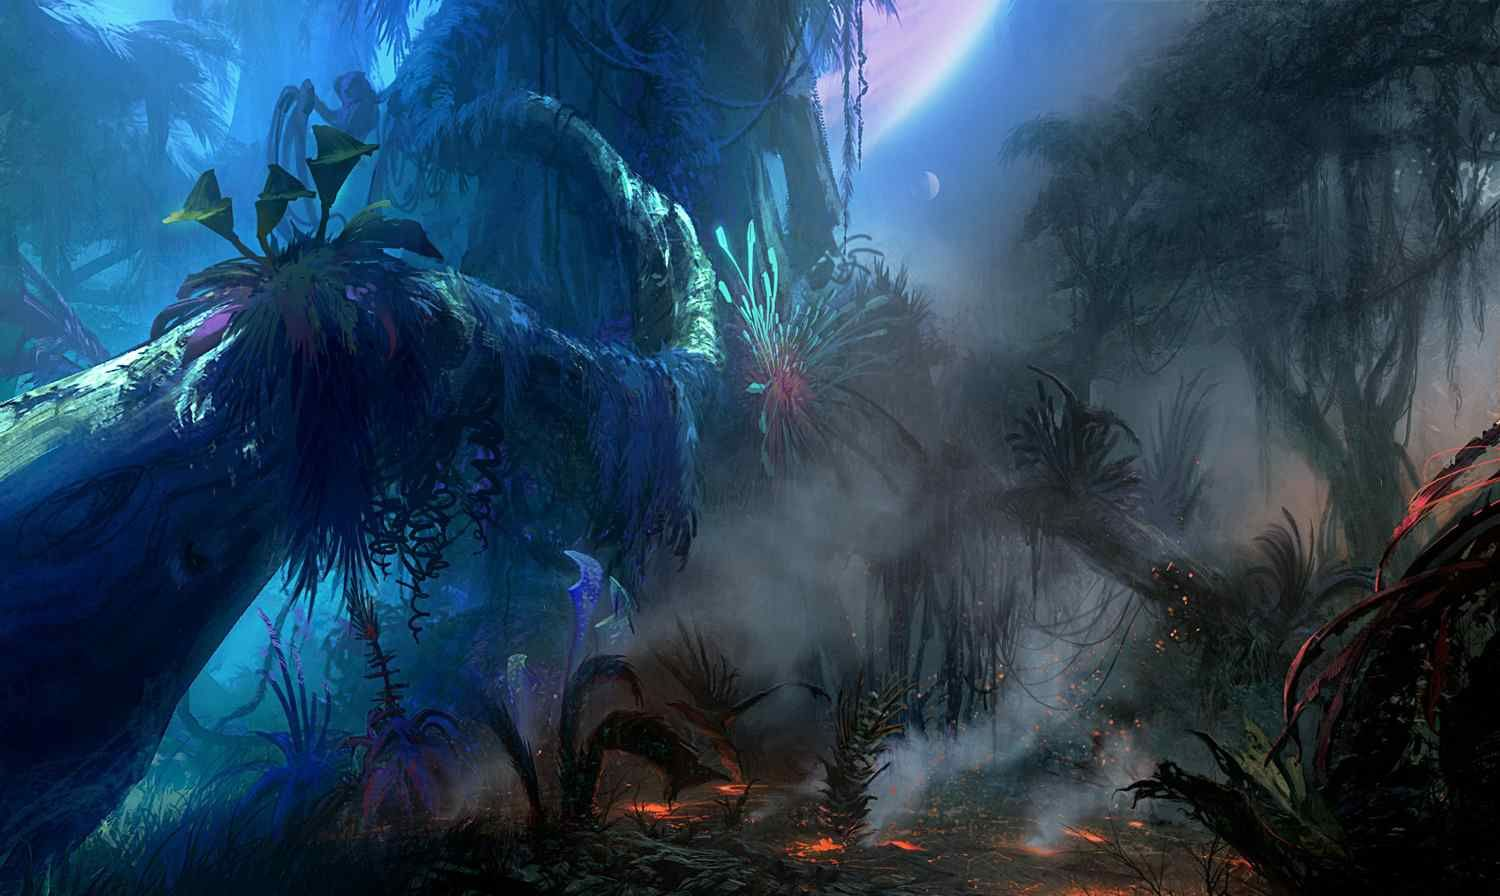 avatar 36 wallpaper background hd fantasy amp illustration